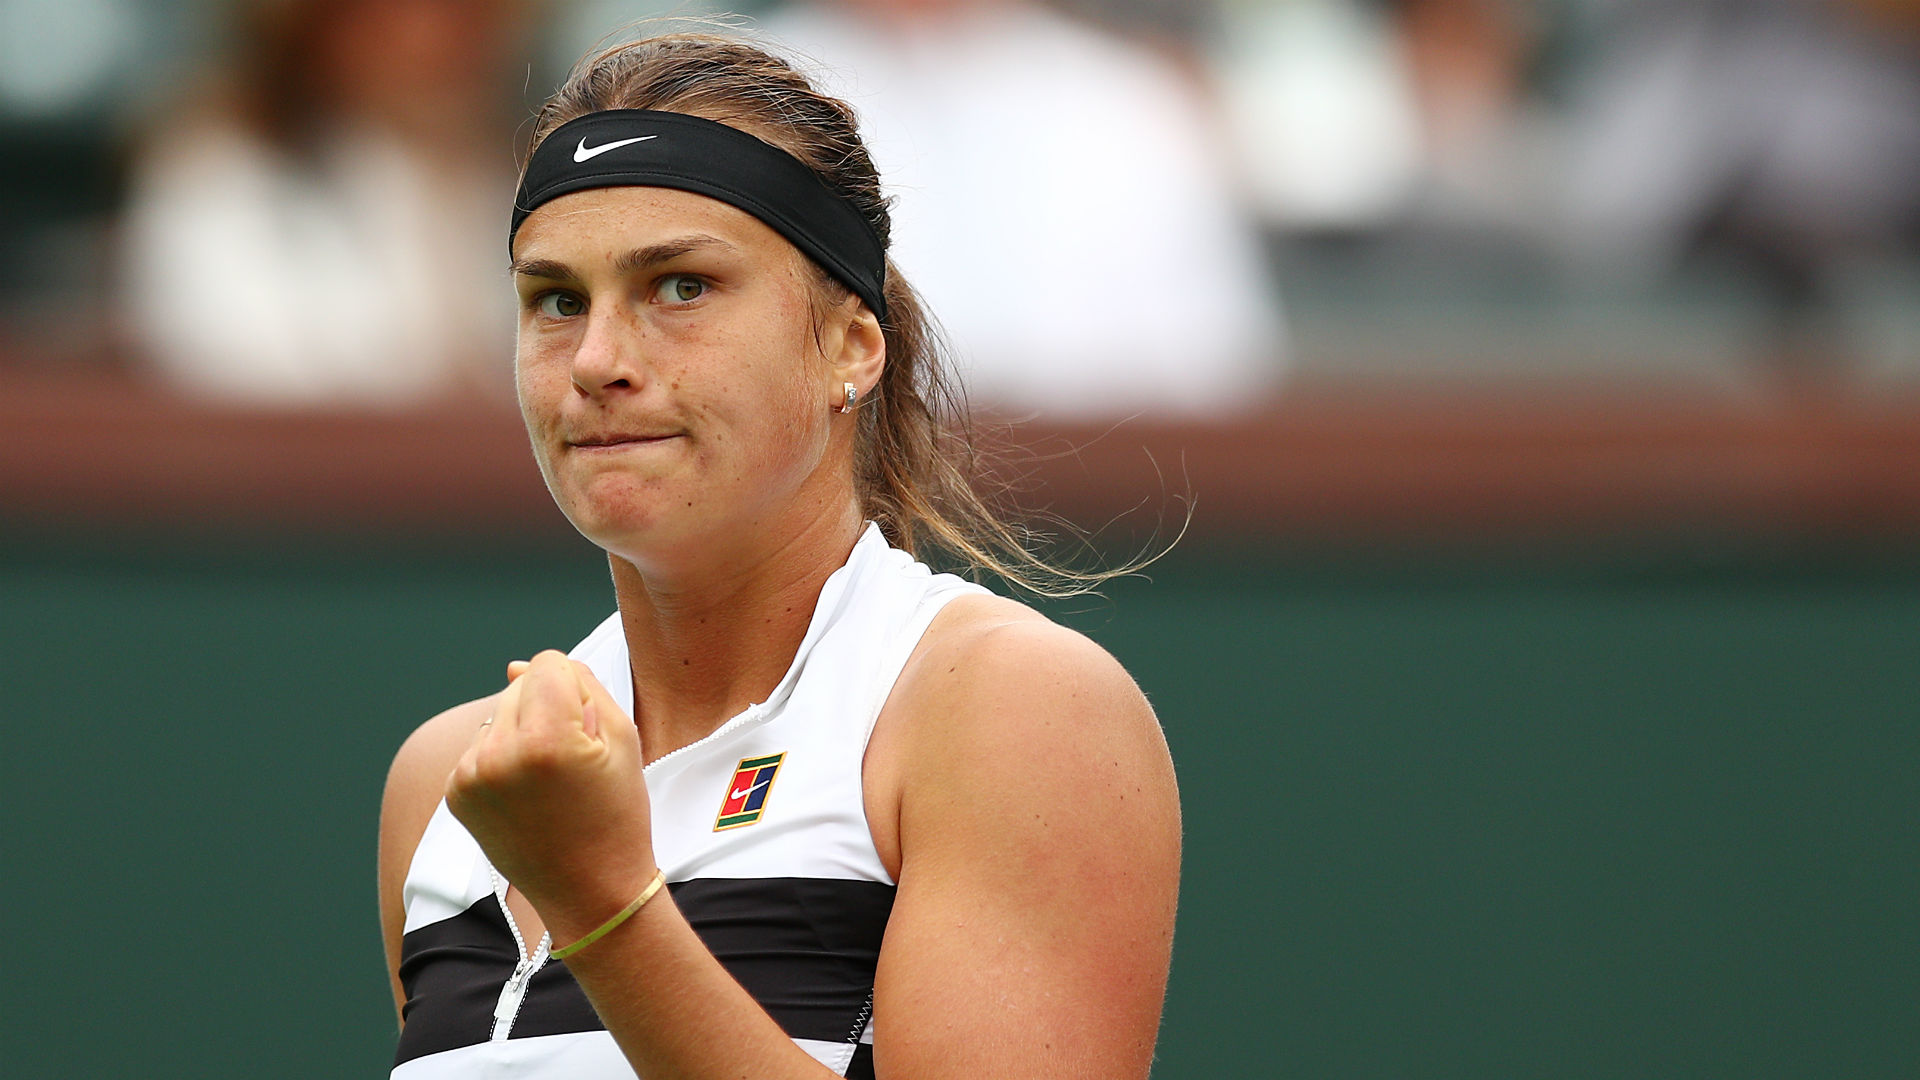 Sabalenka ends clay drought in style with Strasbourg success